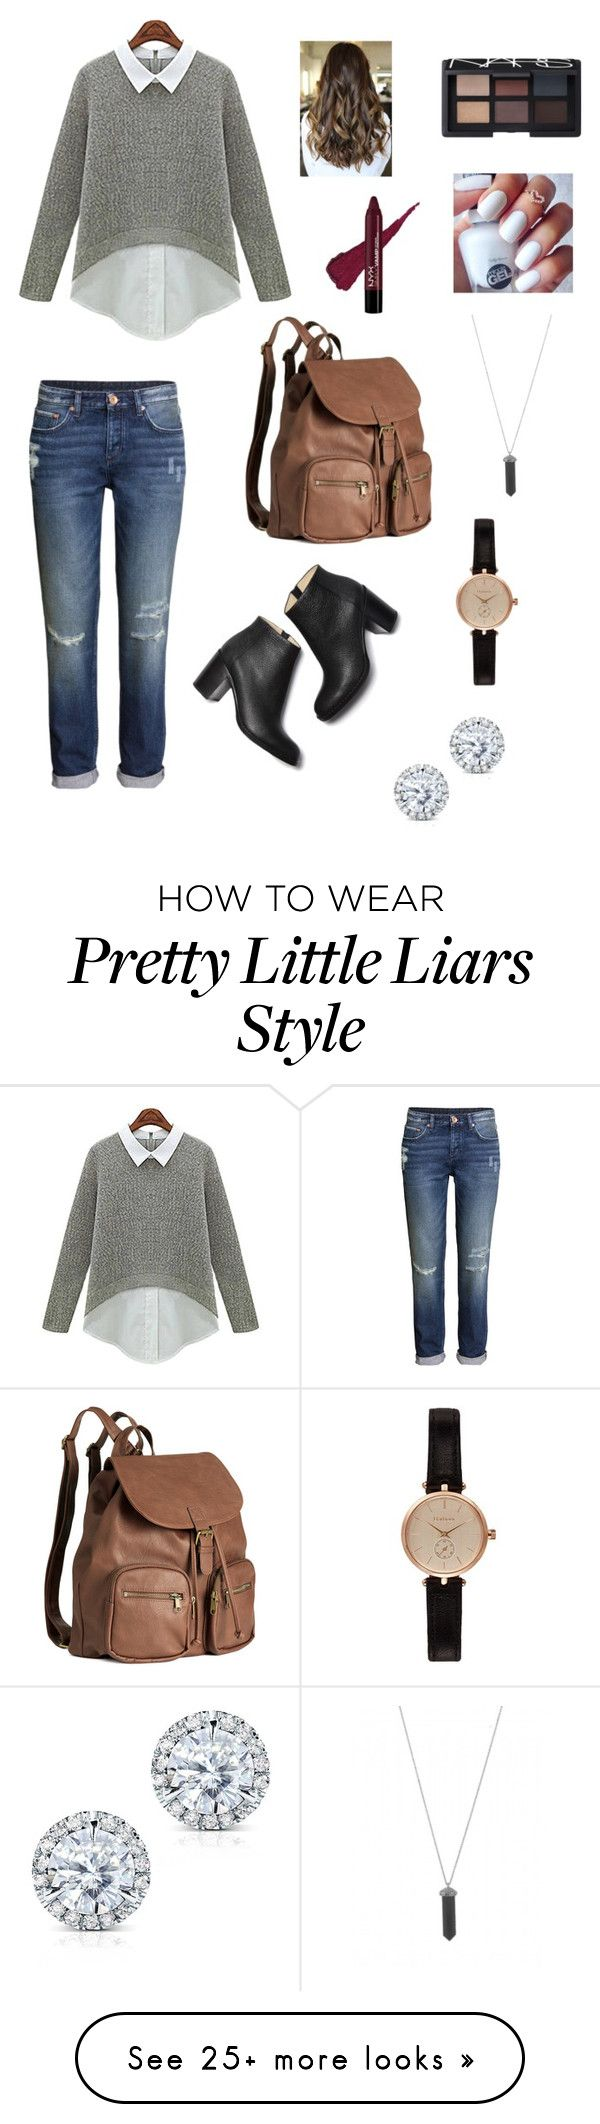 """Spencer Hastings Pretty Little Liars Set 2"" by sophiateixeiraanderson on Polyvore featuring H&M, Paul Andrew, Barbour, NARS Cosmetics, Karen Kane and Kobelli"